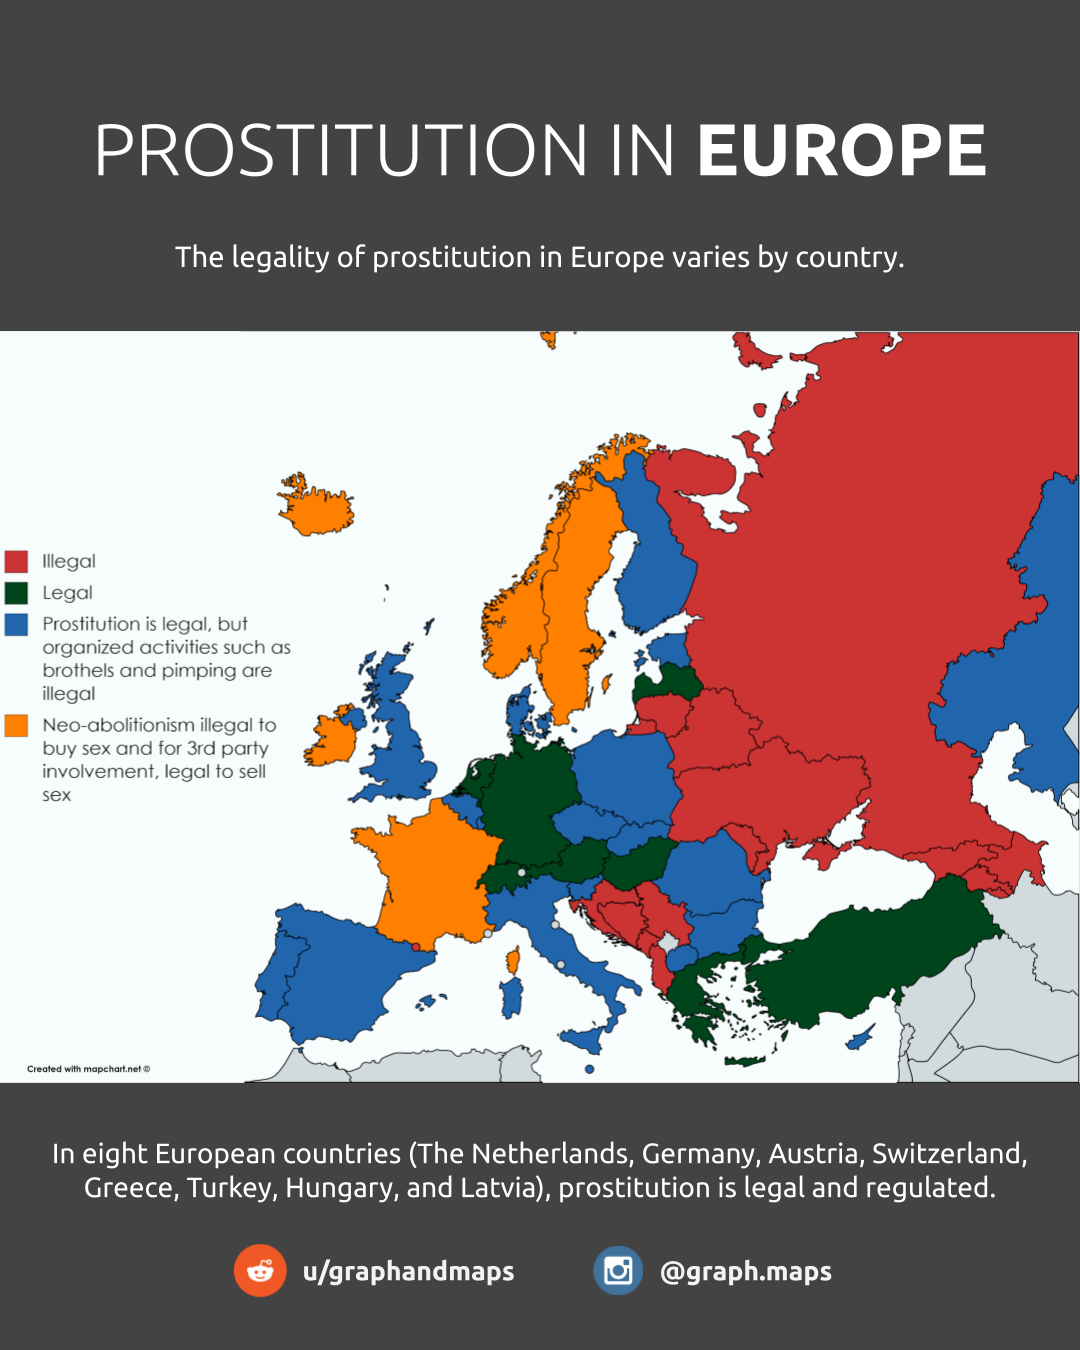 Prostitution laws across Europe